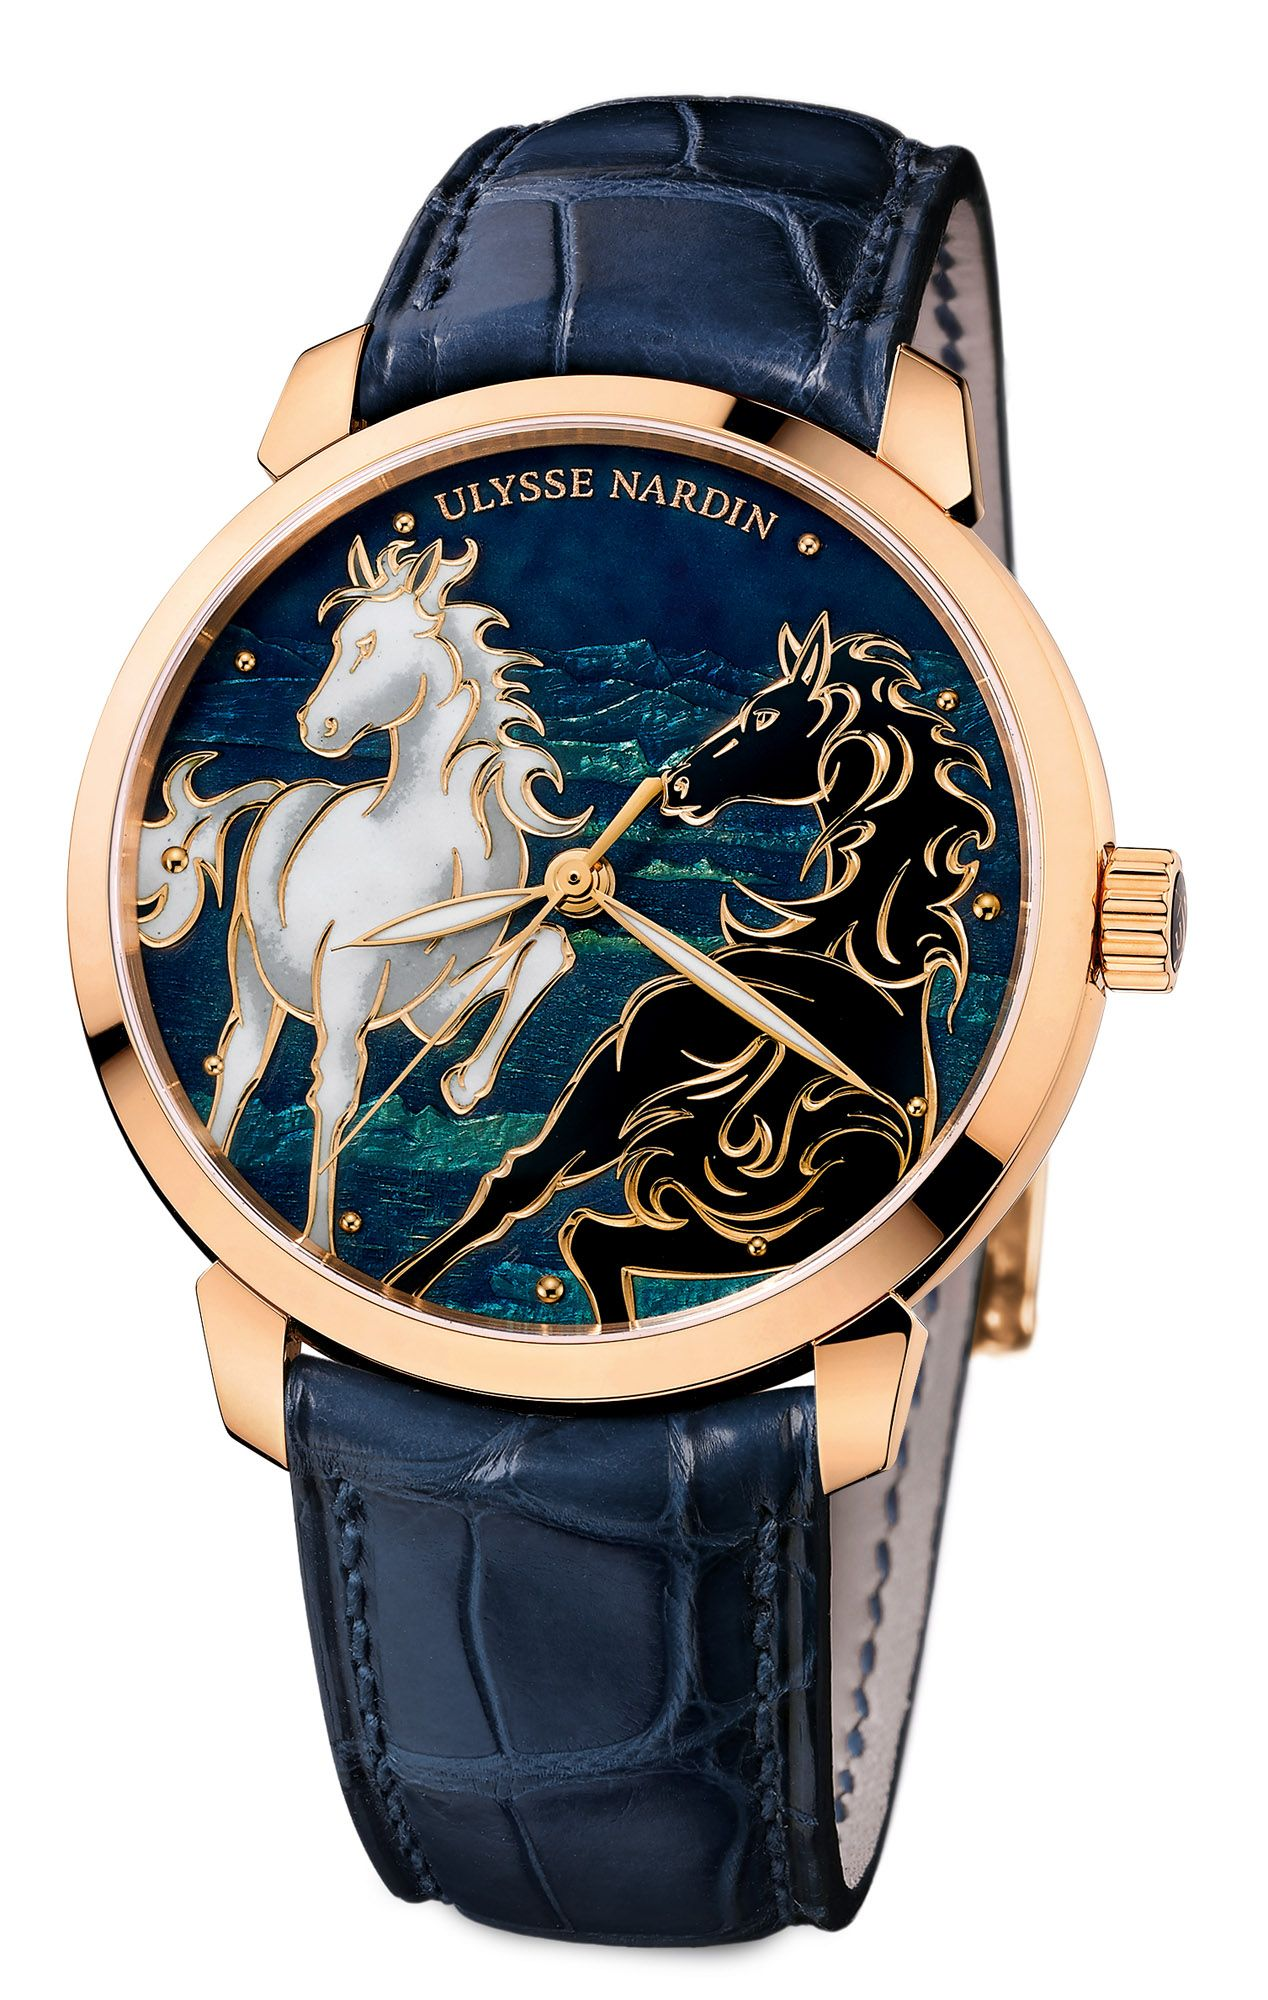 Some of these UN watches are so bizarre to me and yet they make me  wet.....from drool ok gah omg - Ulysse Nardin Classico Horse f23fa691f75